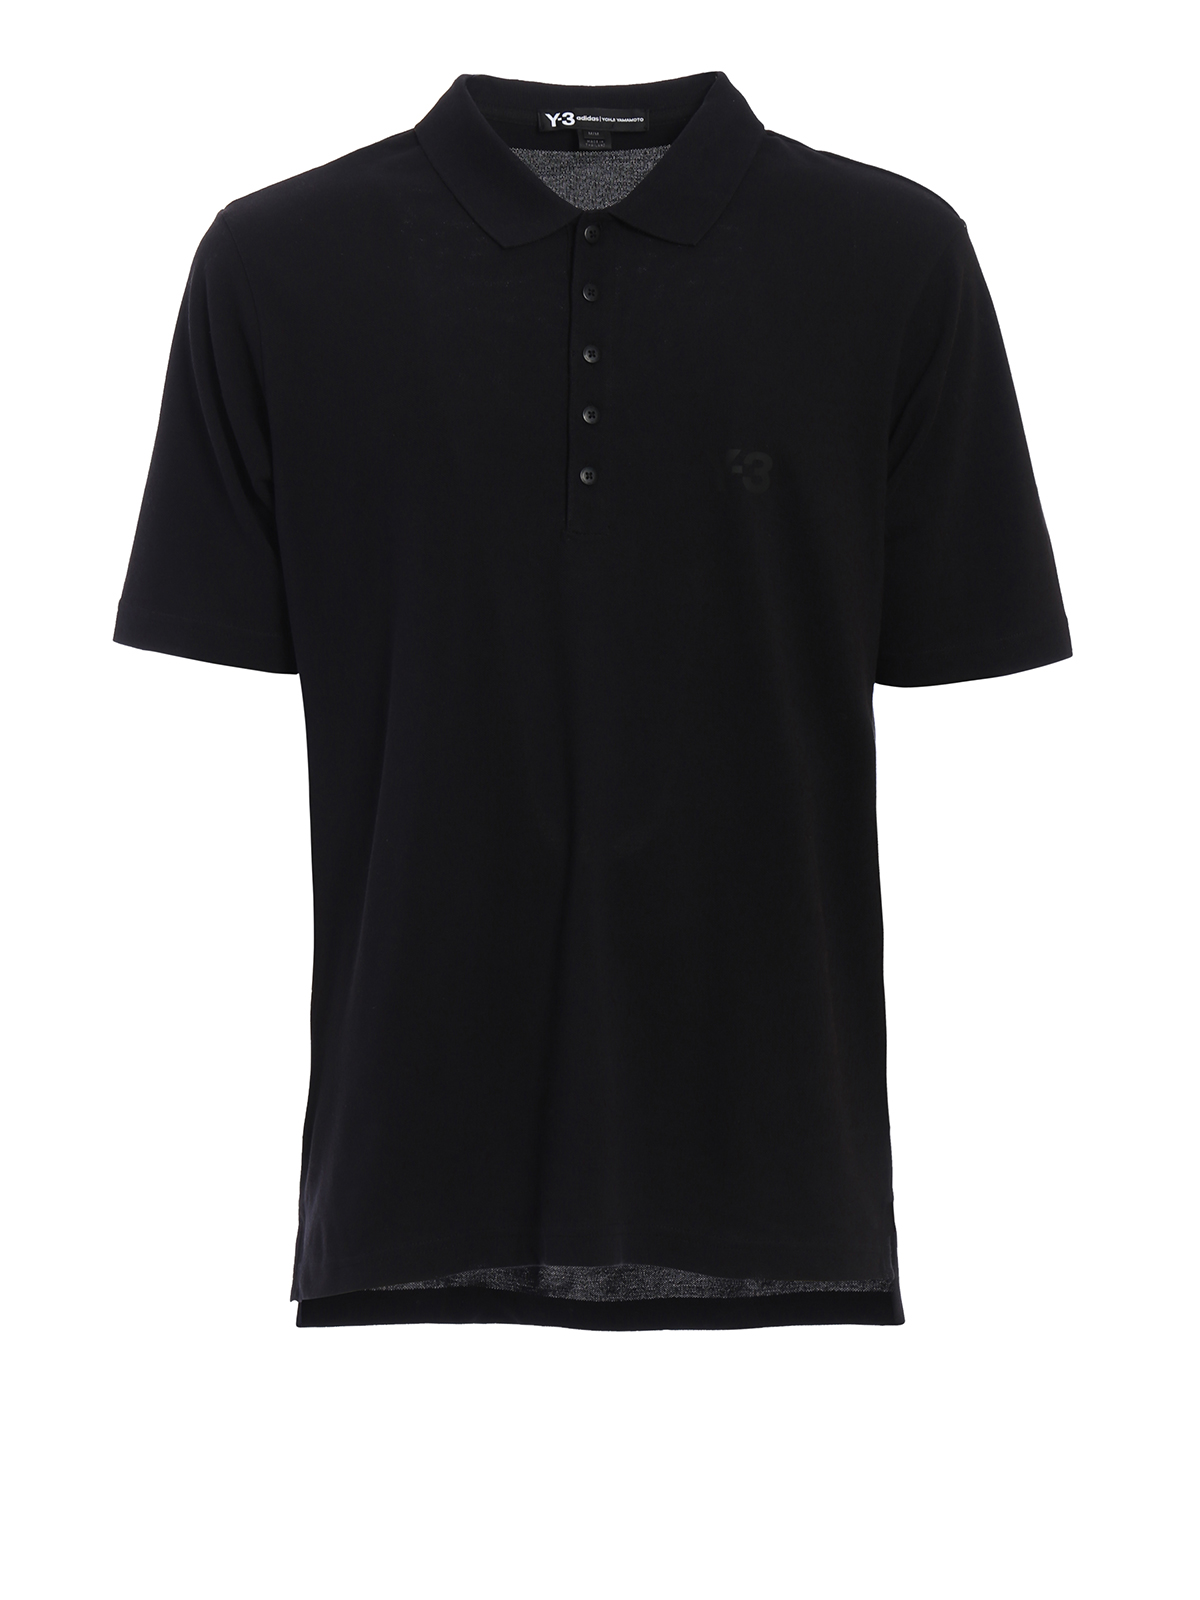 Logo print pique polo shirt by adidas y 3 polo shirts for Polo shirts for printing